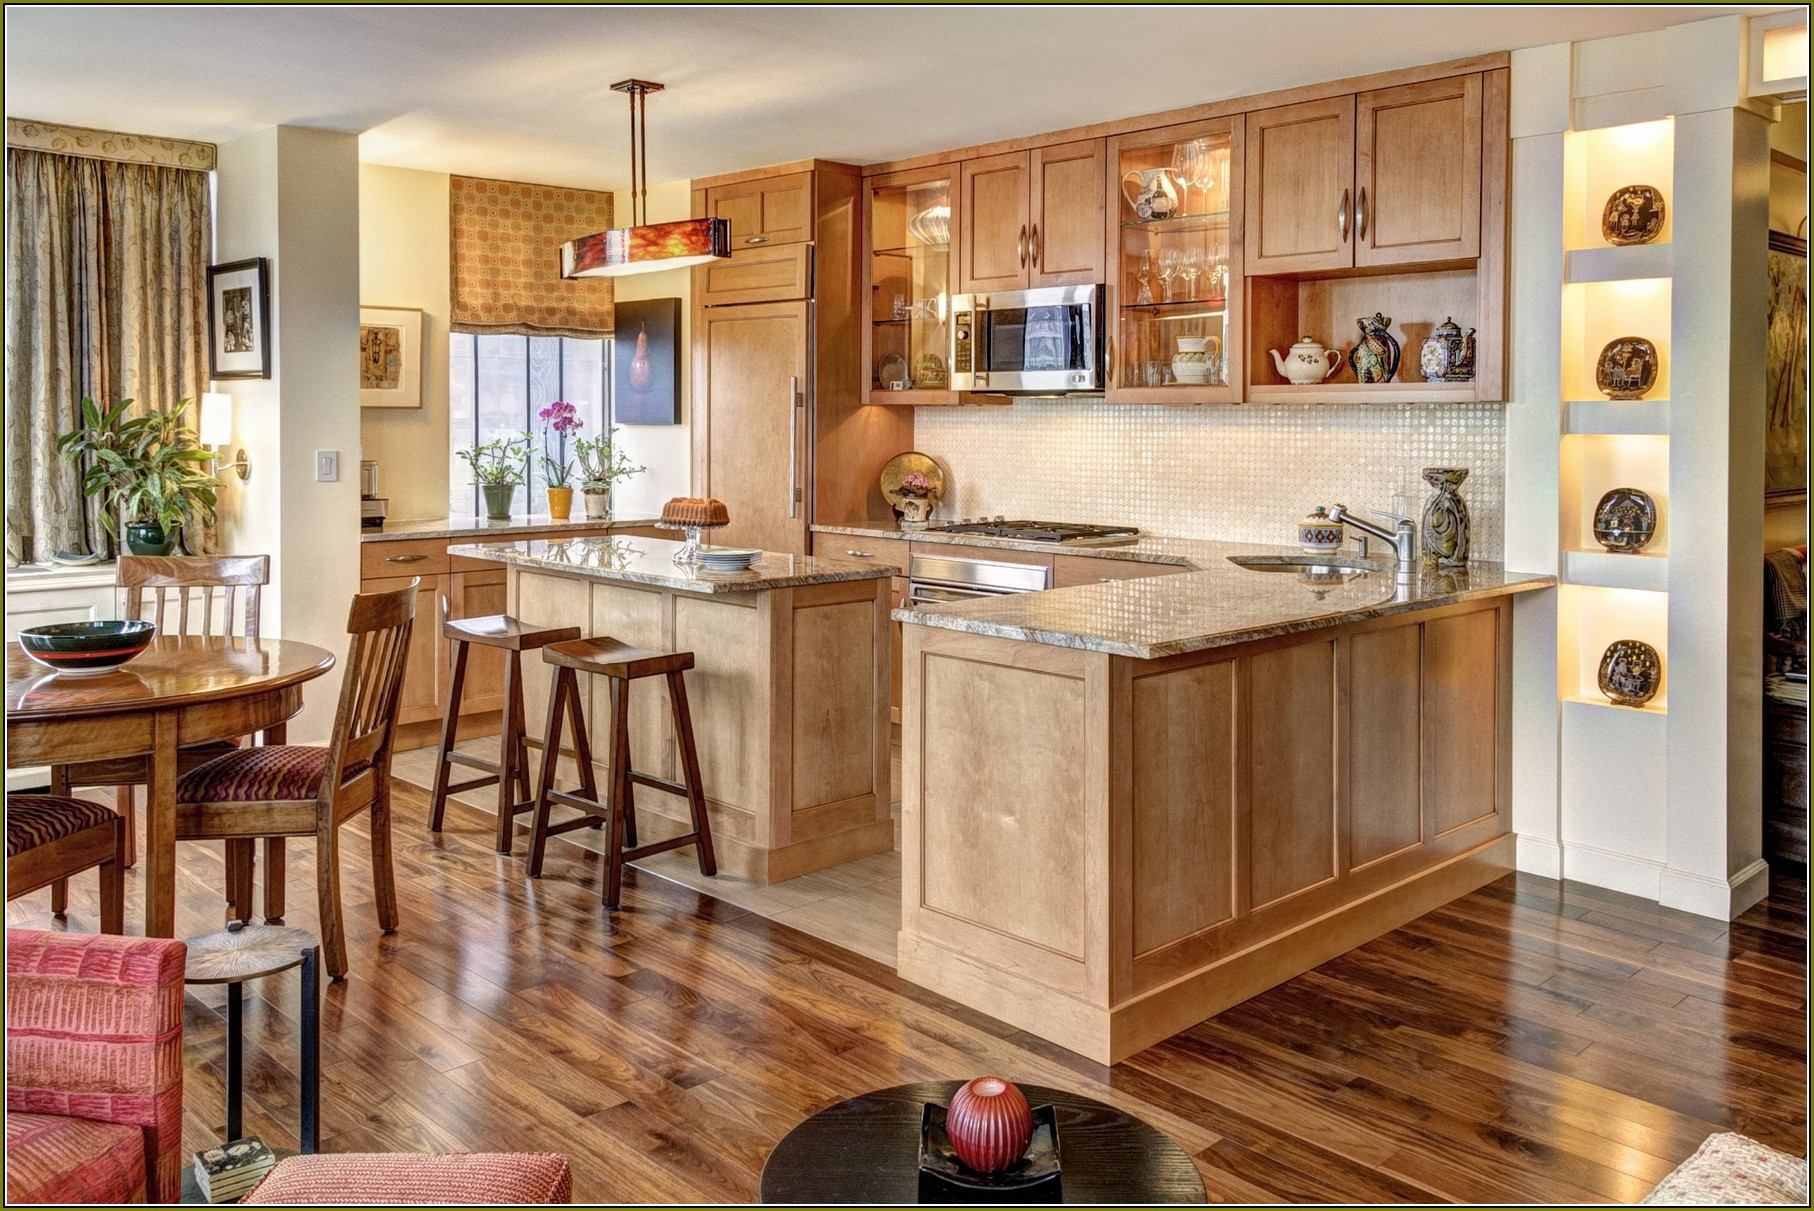 hardwood floor refinishing in richmond va of 44 awesome kitchen paint colors with light oak cabinets stock pertaining to kitchen paint colors with maple cabinets best what color hardwood floor with oak cabinets